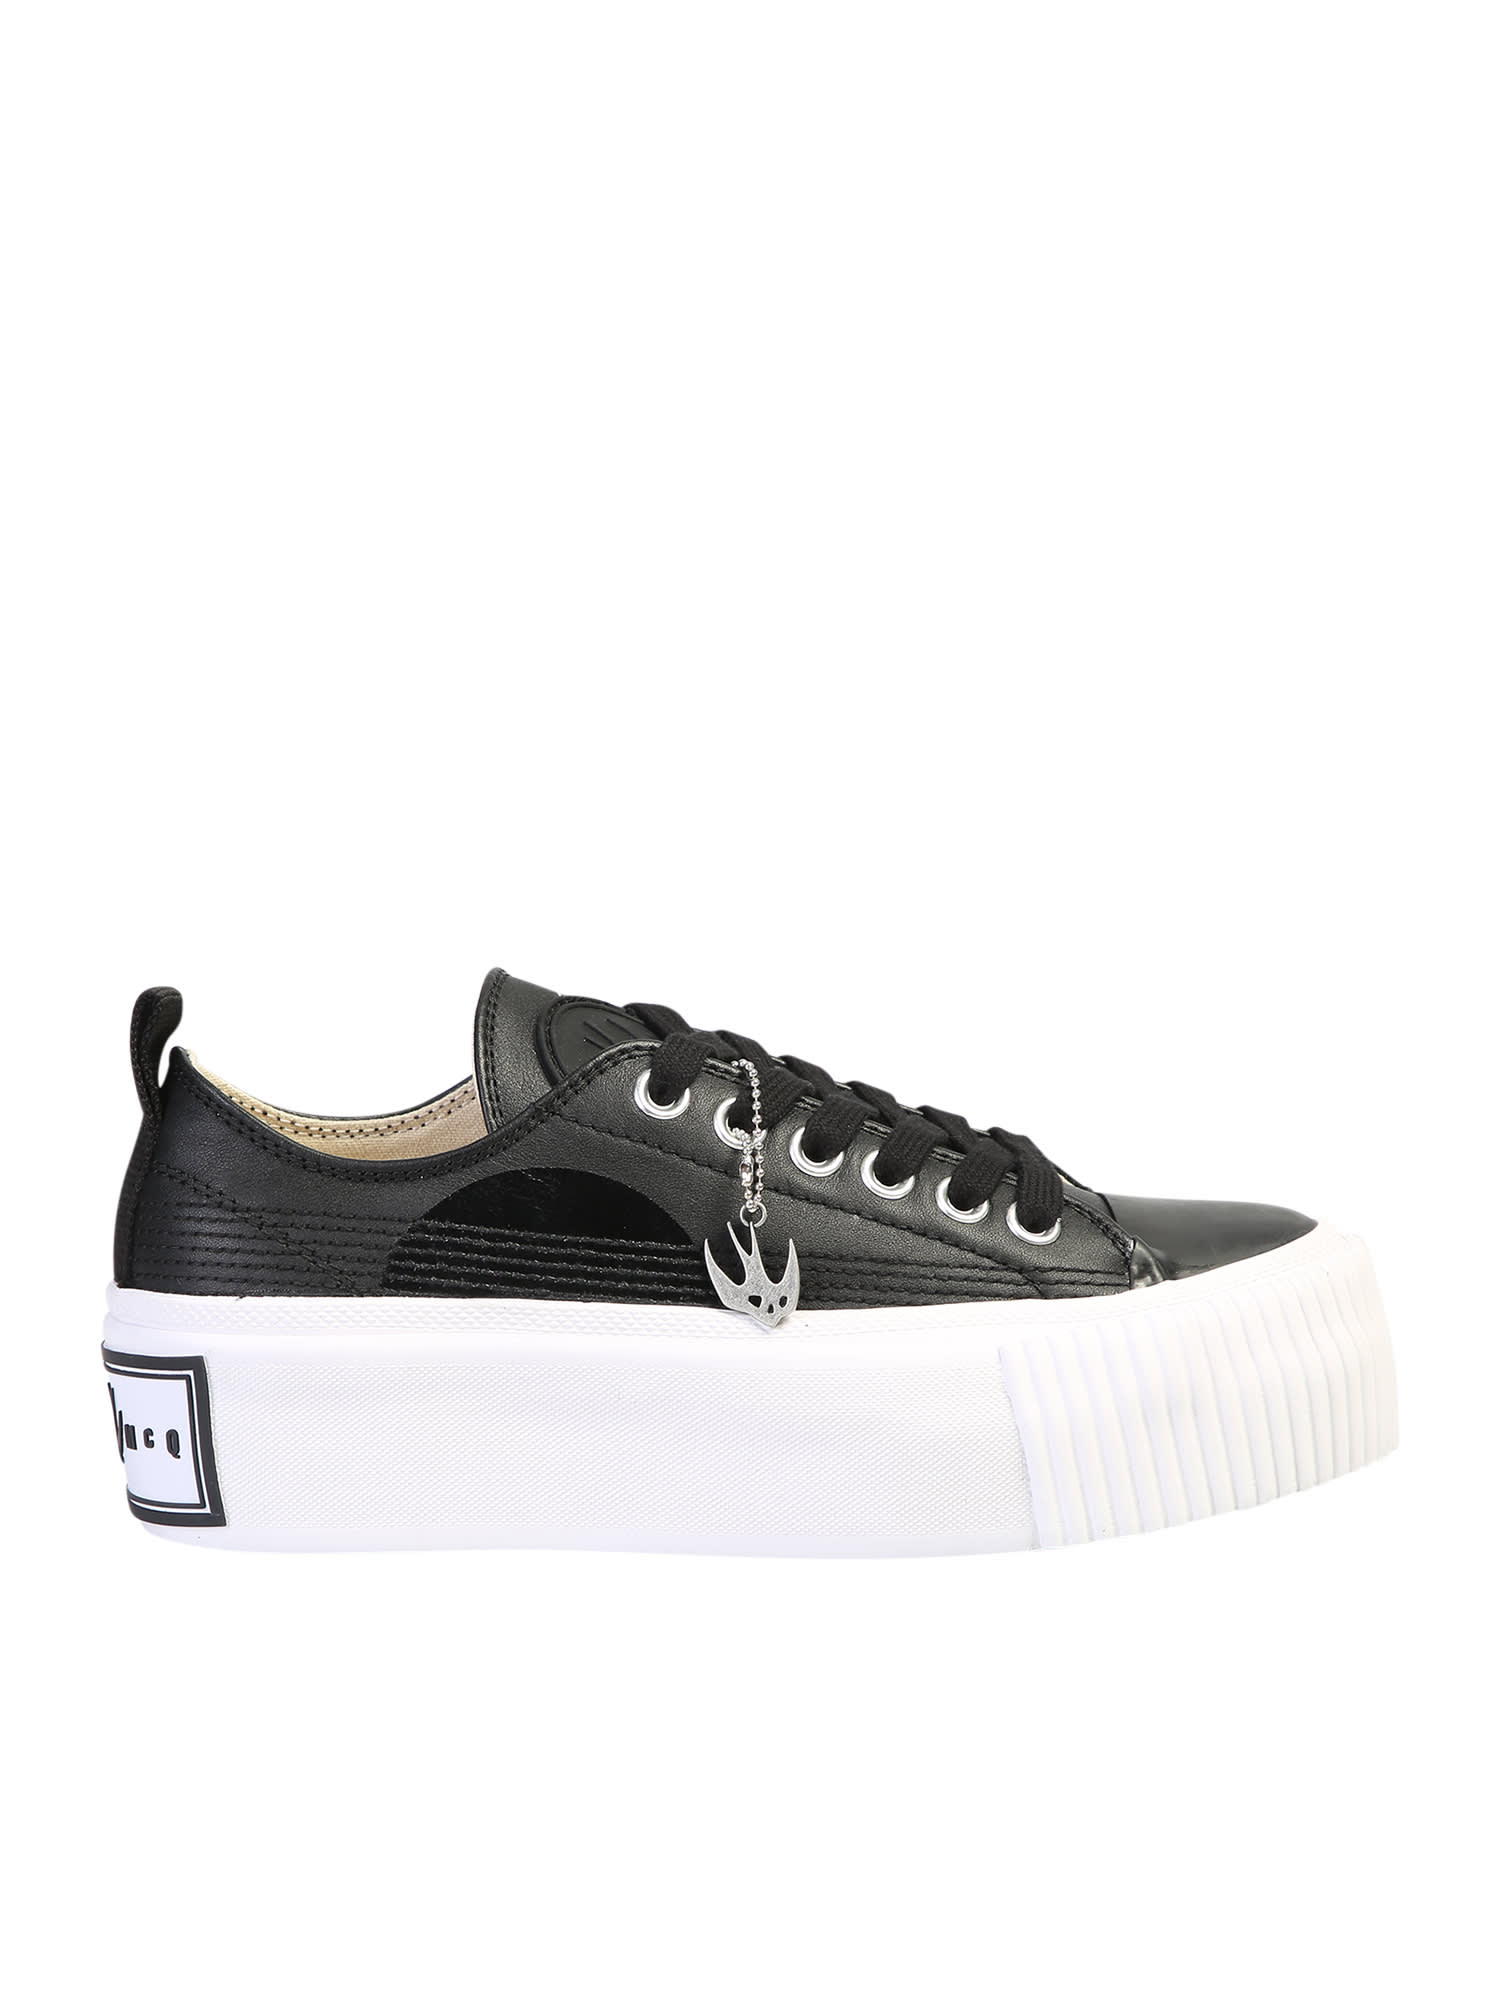 best loved fcc1e 106c2 Best price on the market at italist | McQ Alexander McQueen McQ Alexander  McQueen Plimsoll Sneakers